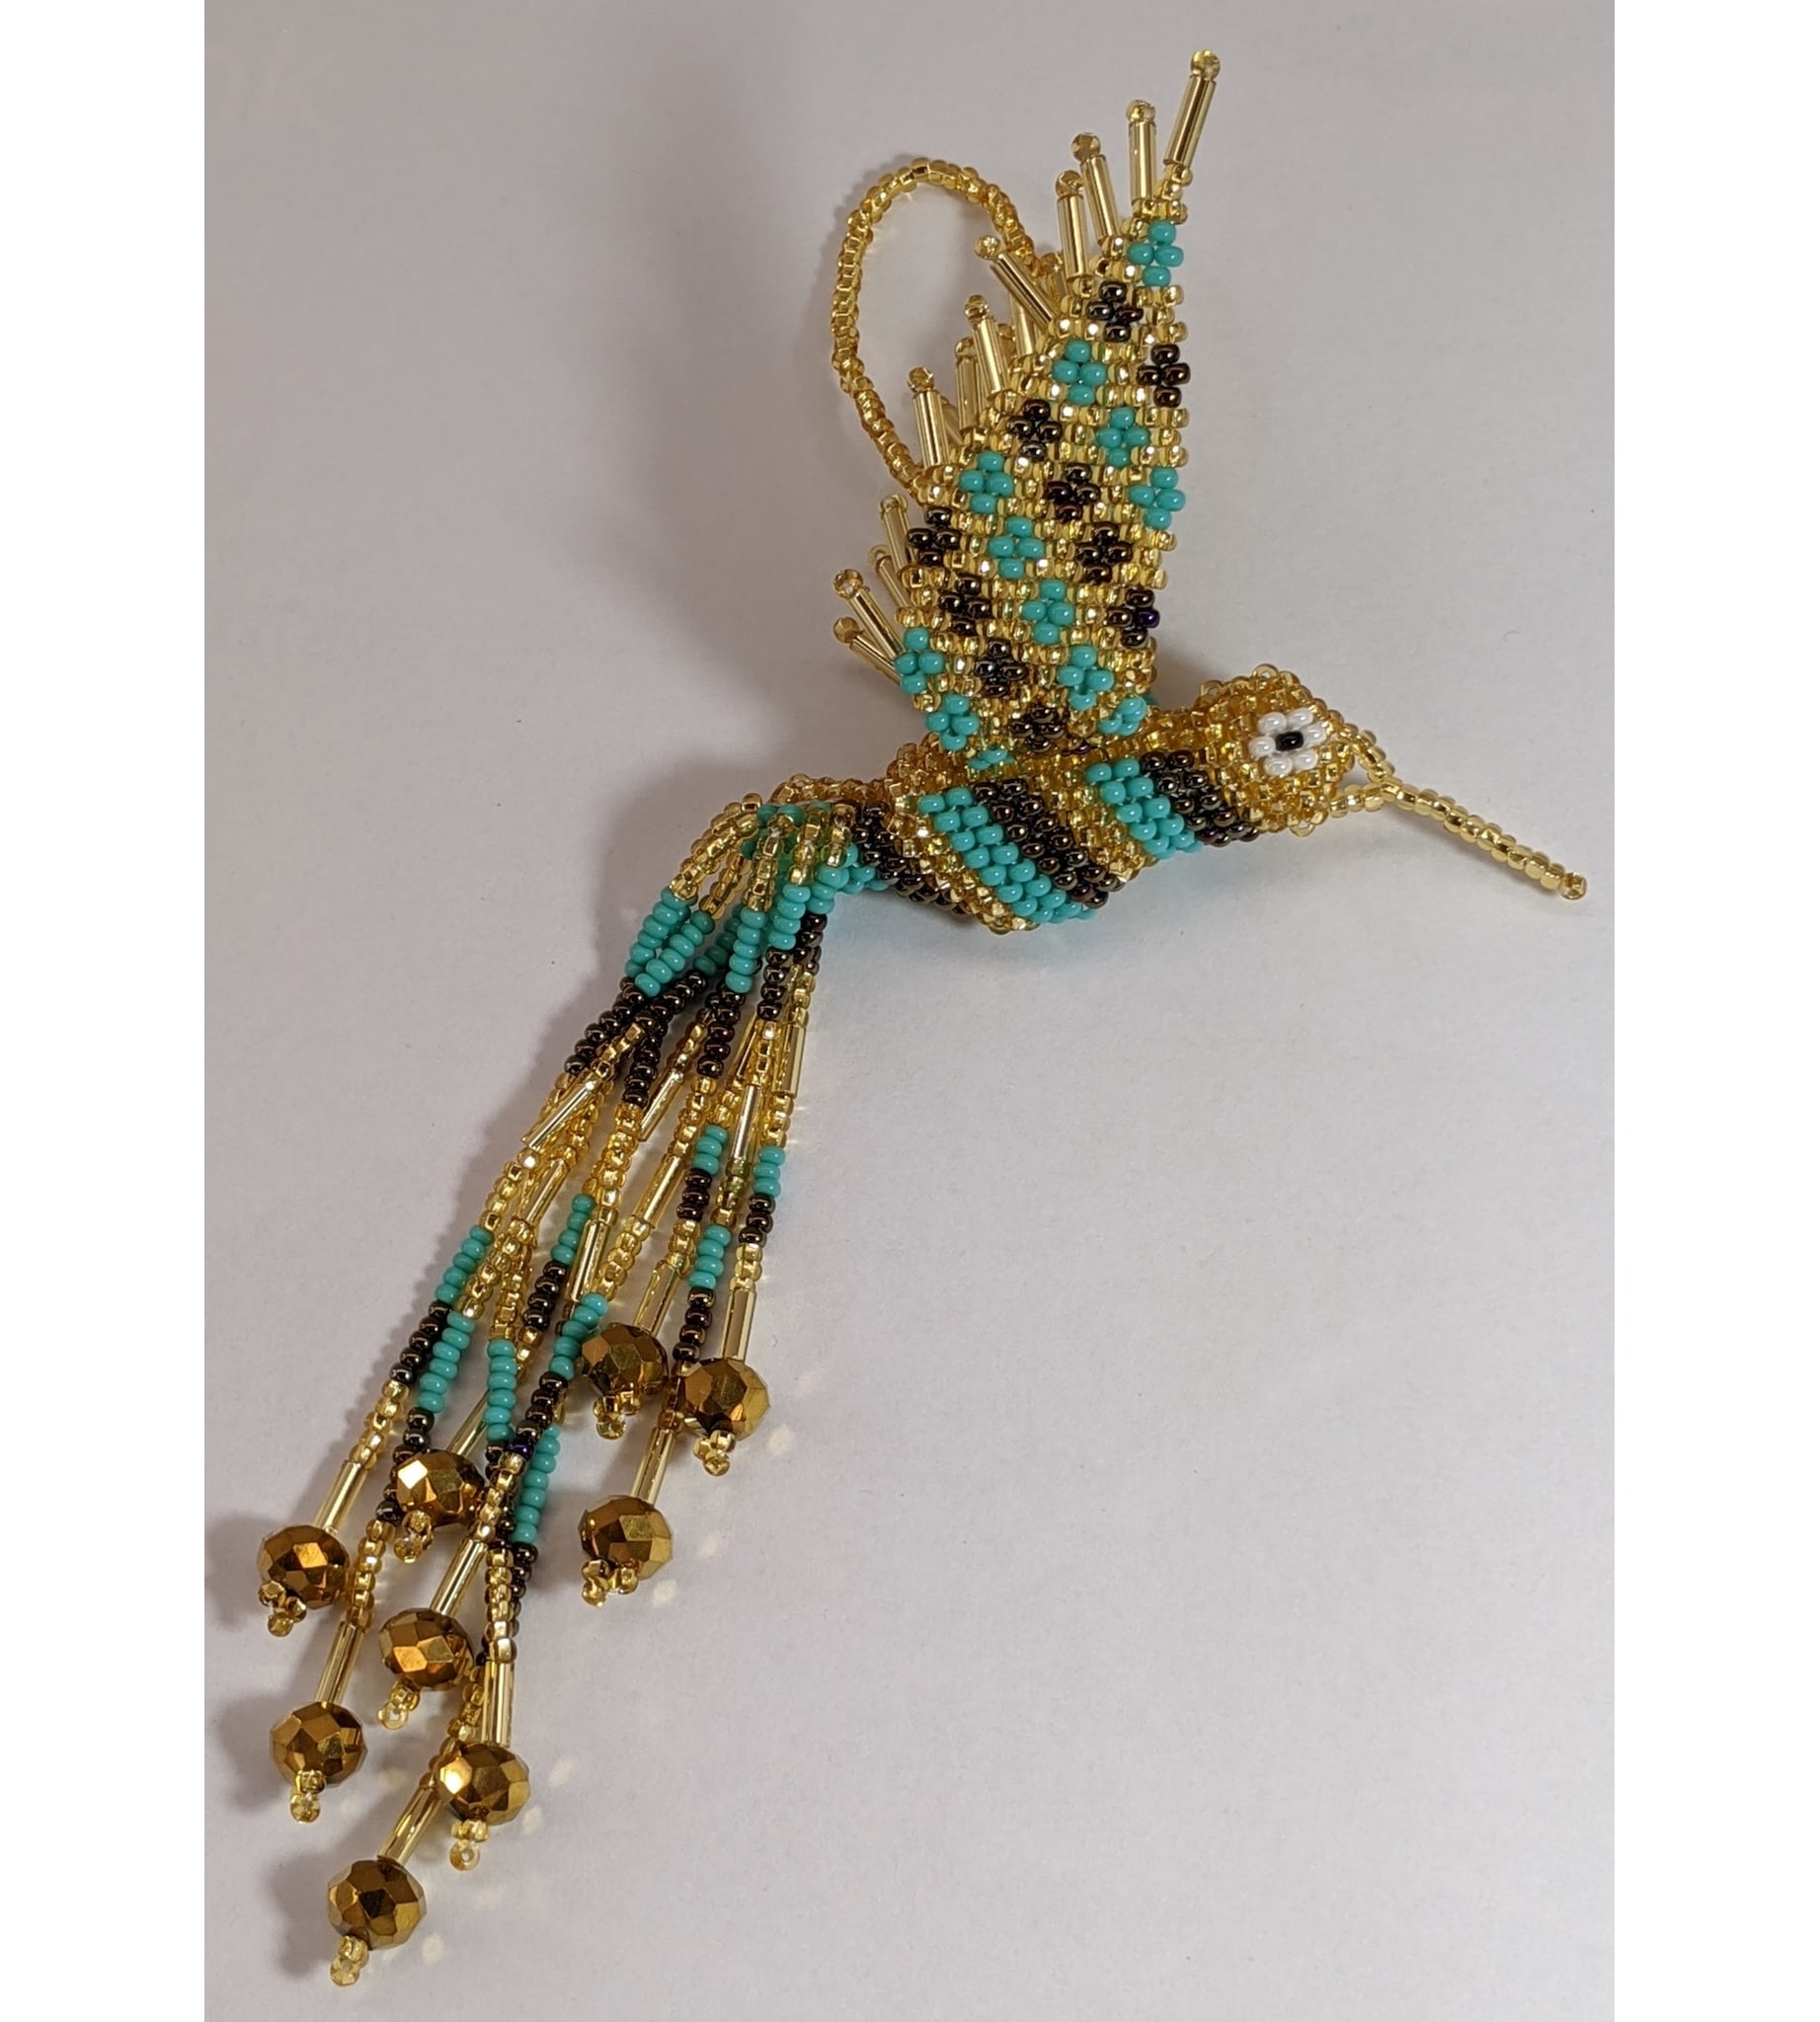 Hummingbird Beaded Ornament - Gold, Turquoise, and Iridescent Brown